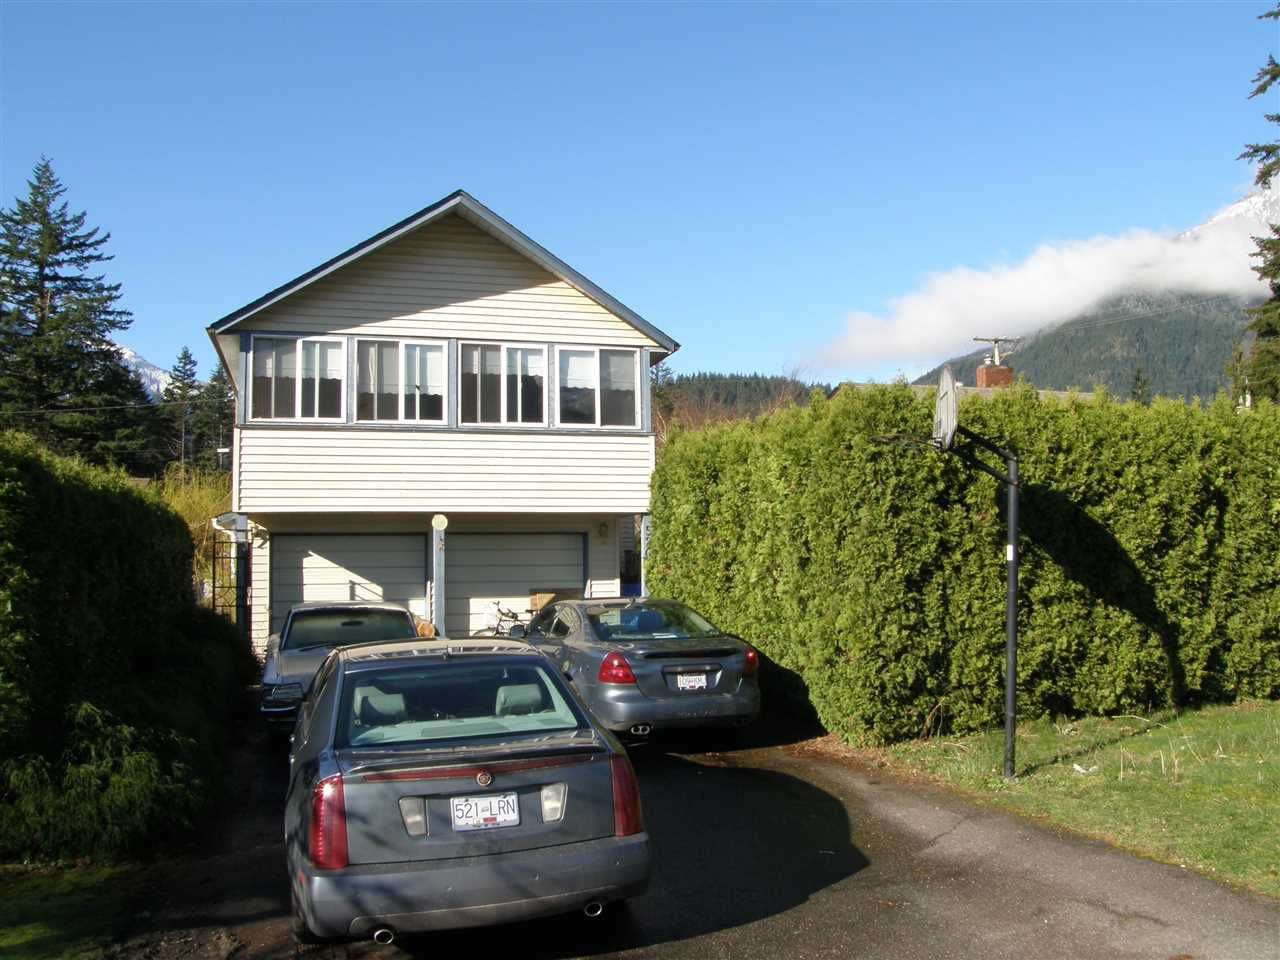 Main Photo: 520 3RD Avenue in Hope: Hope Center House for sale : MLS®# R2048154